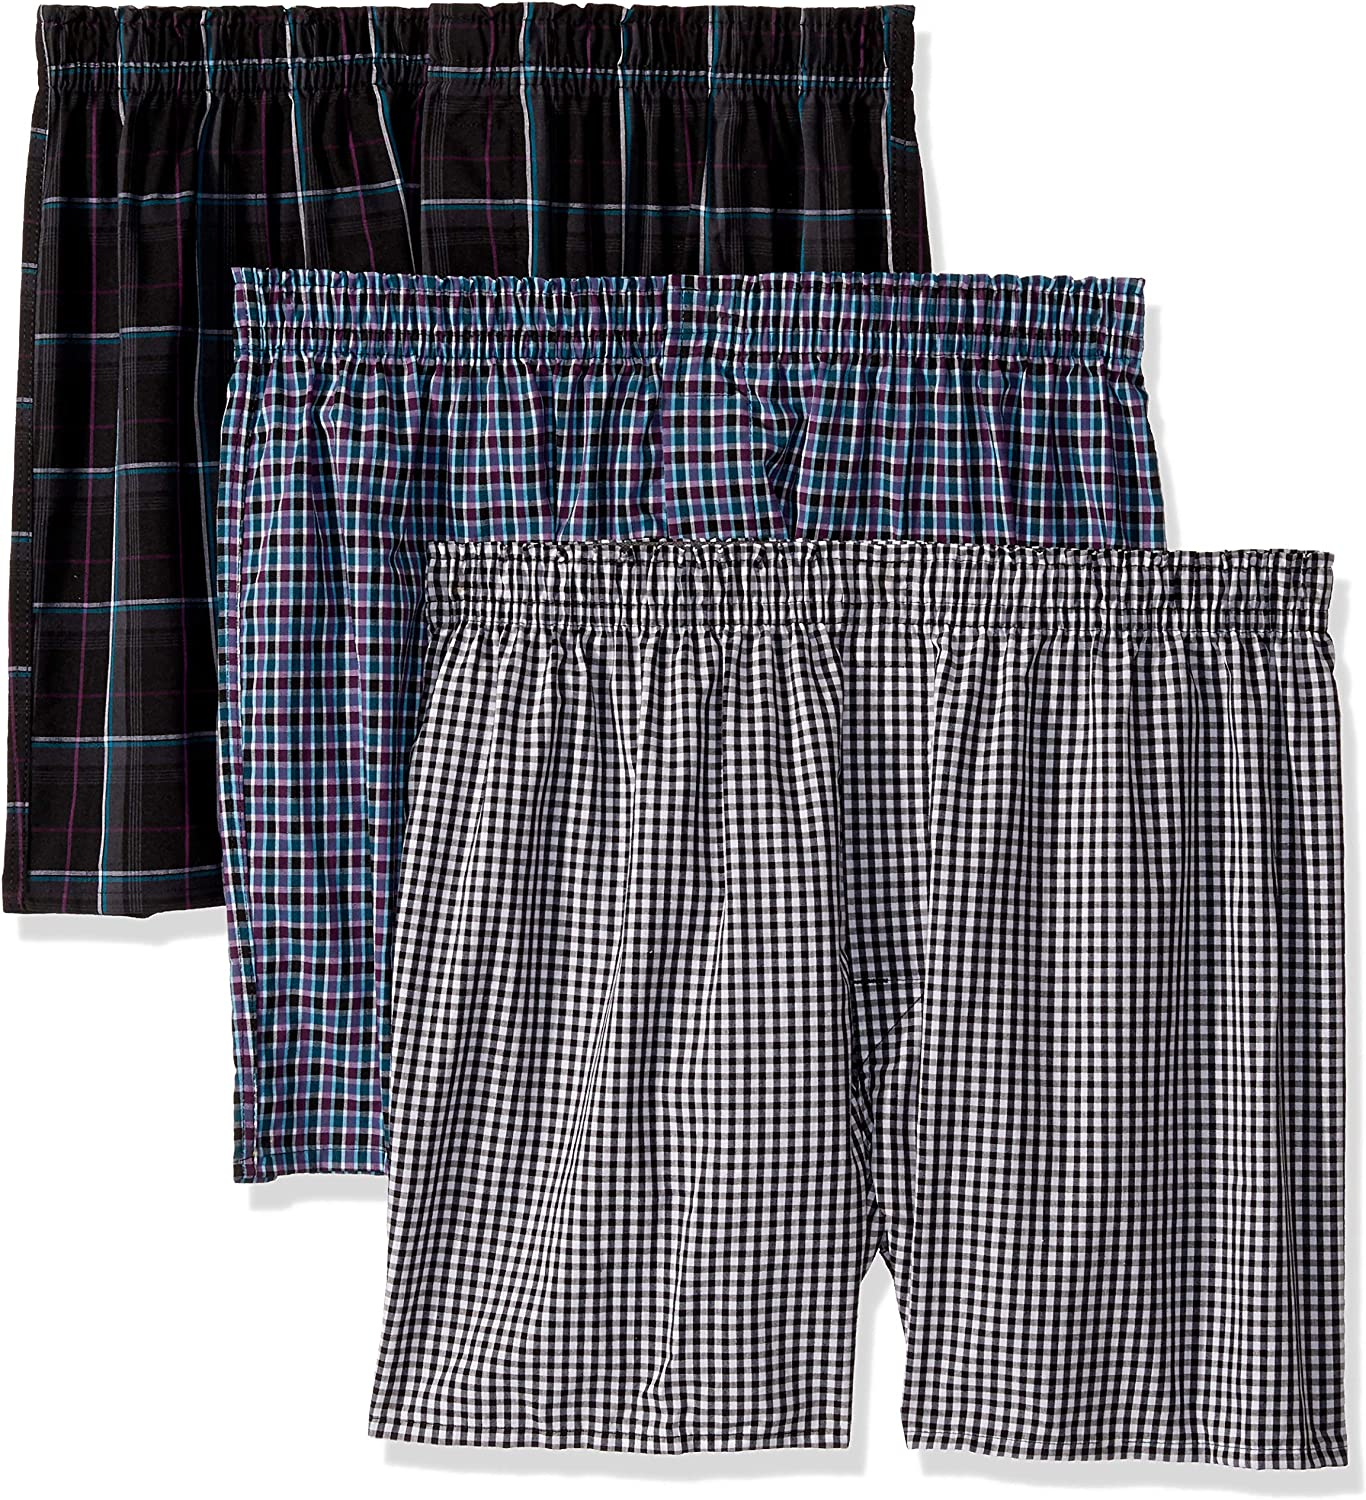 Hanes Ultimate Men's Woven Boxers Colors, Assorted